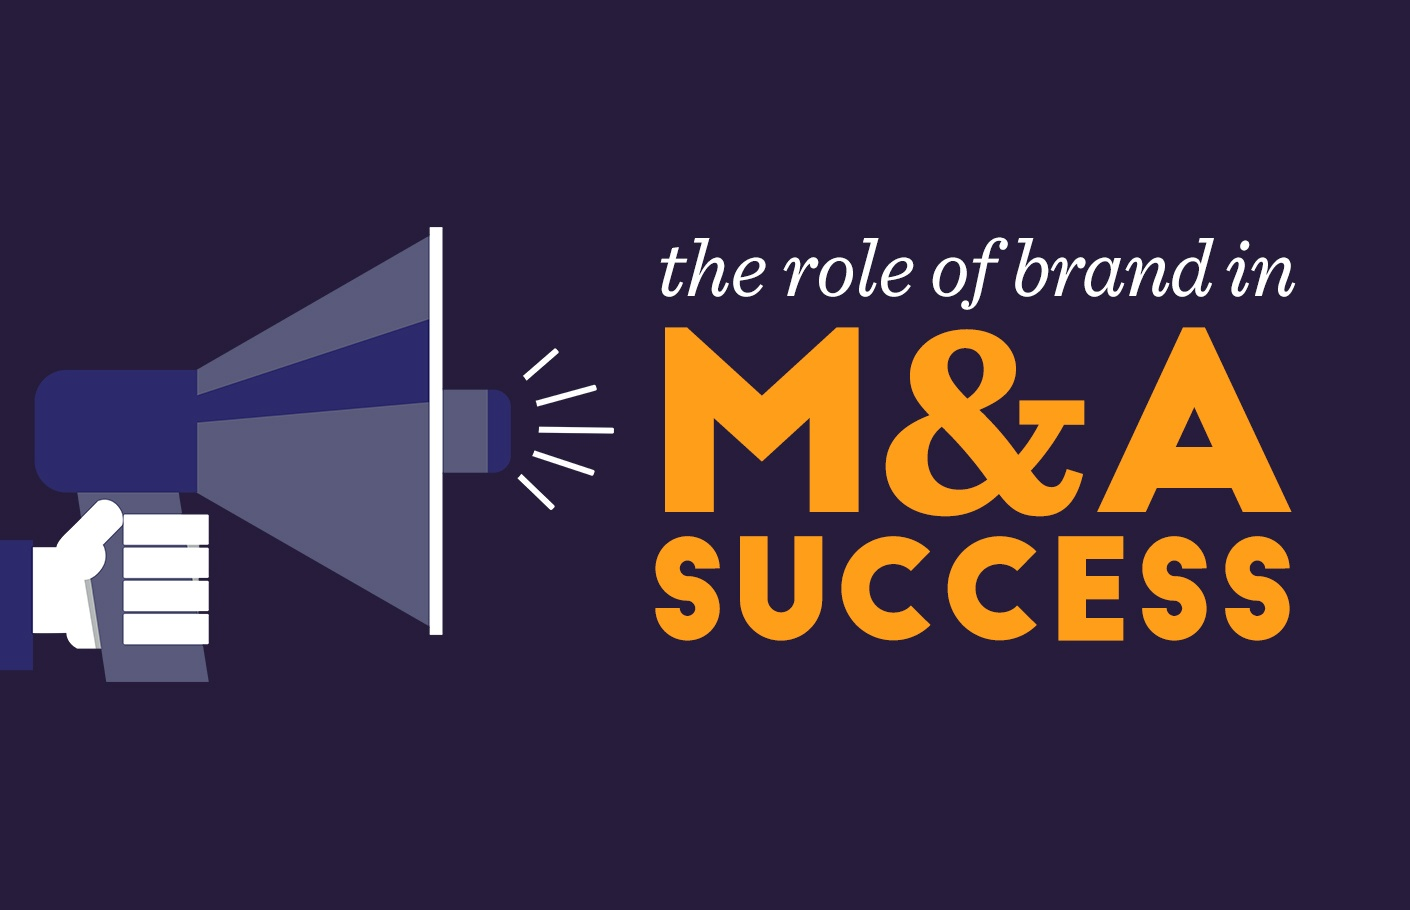 The Role of Brand in M&A Success